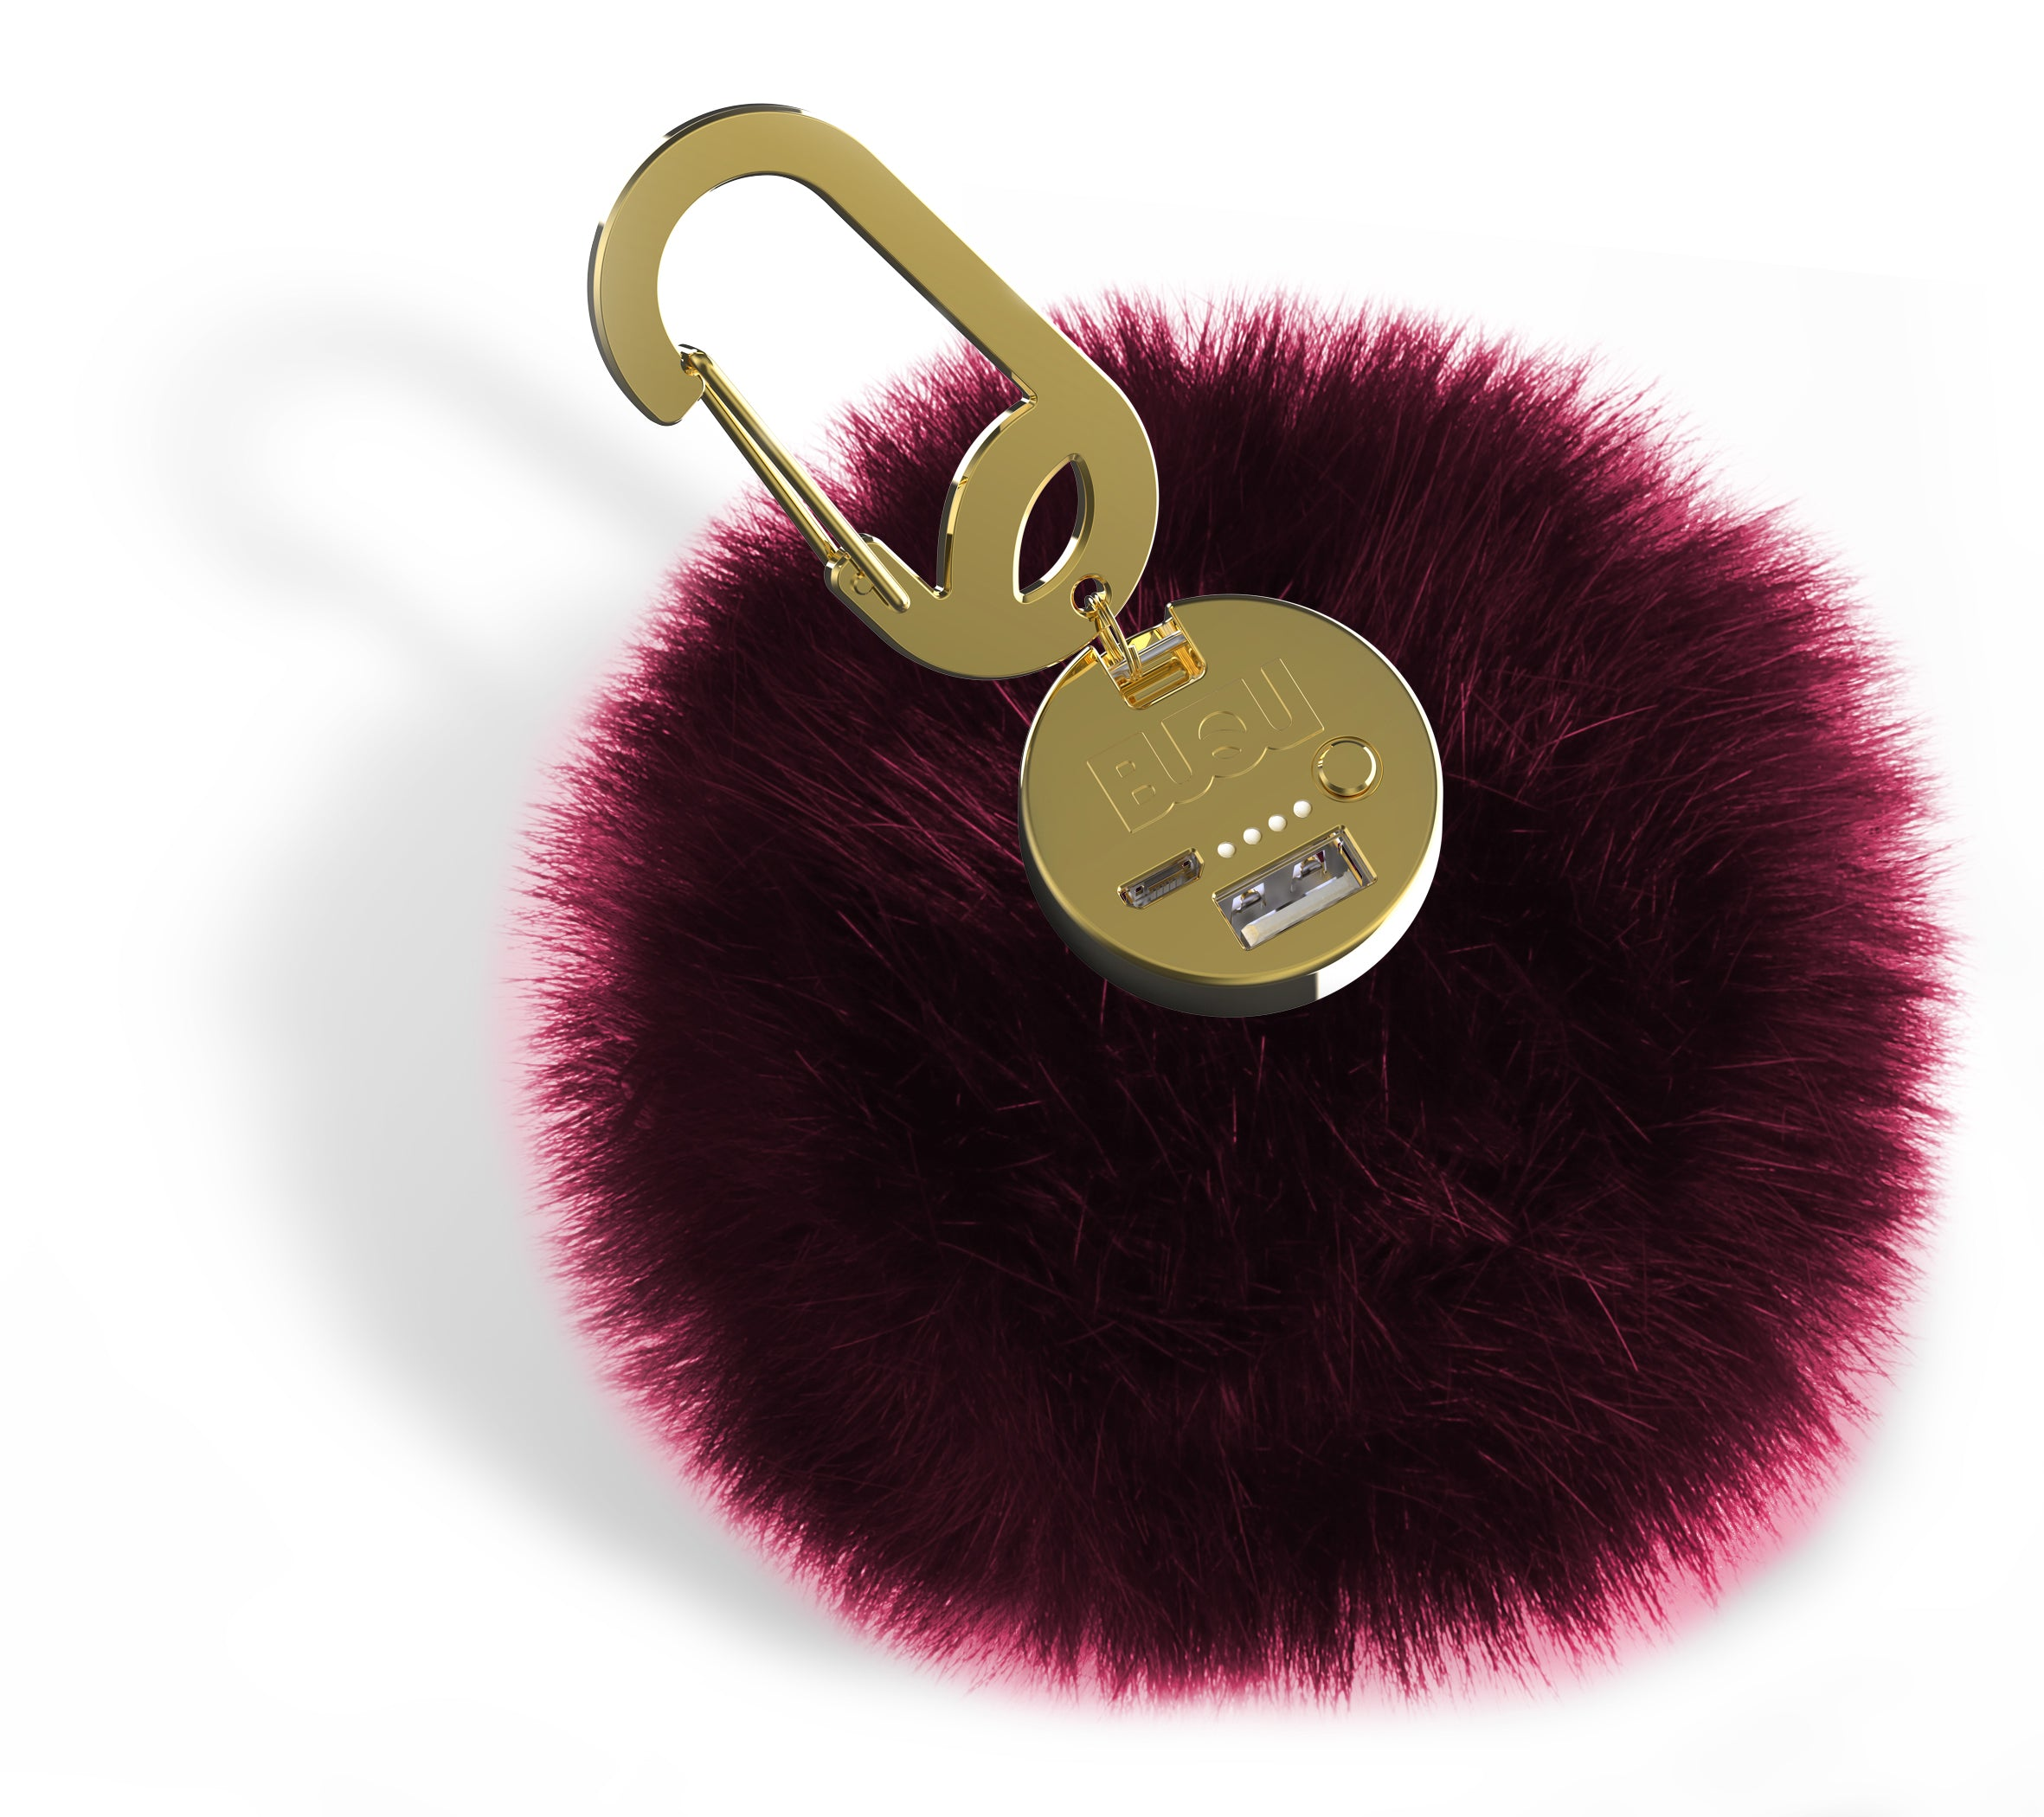 Poof Plum Product Image